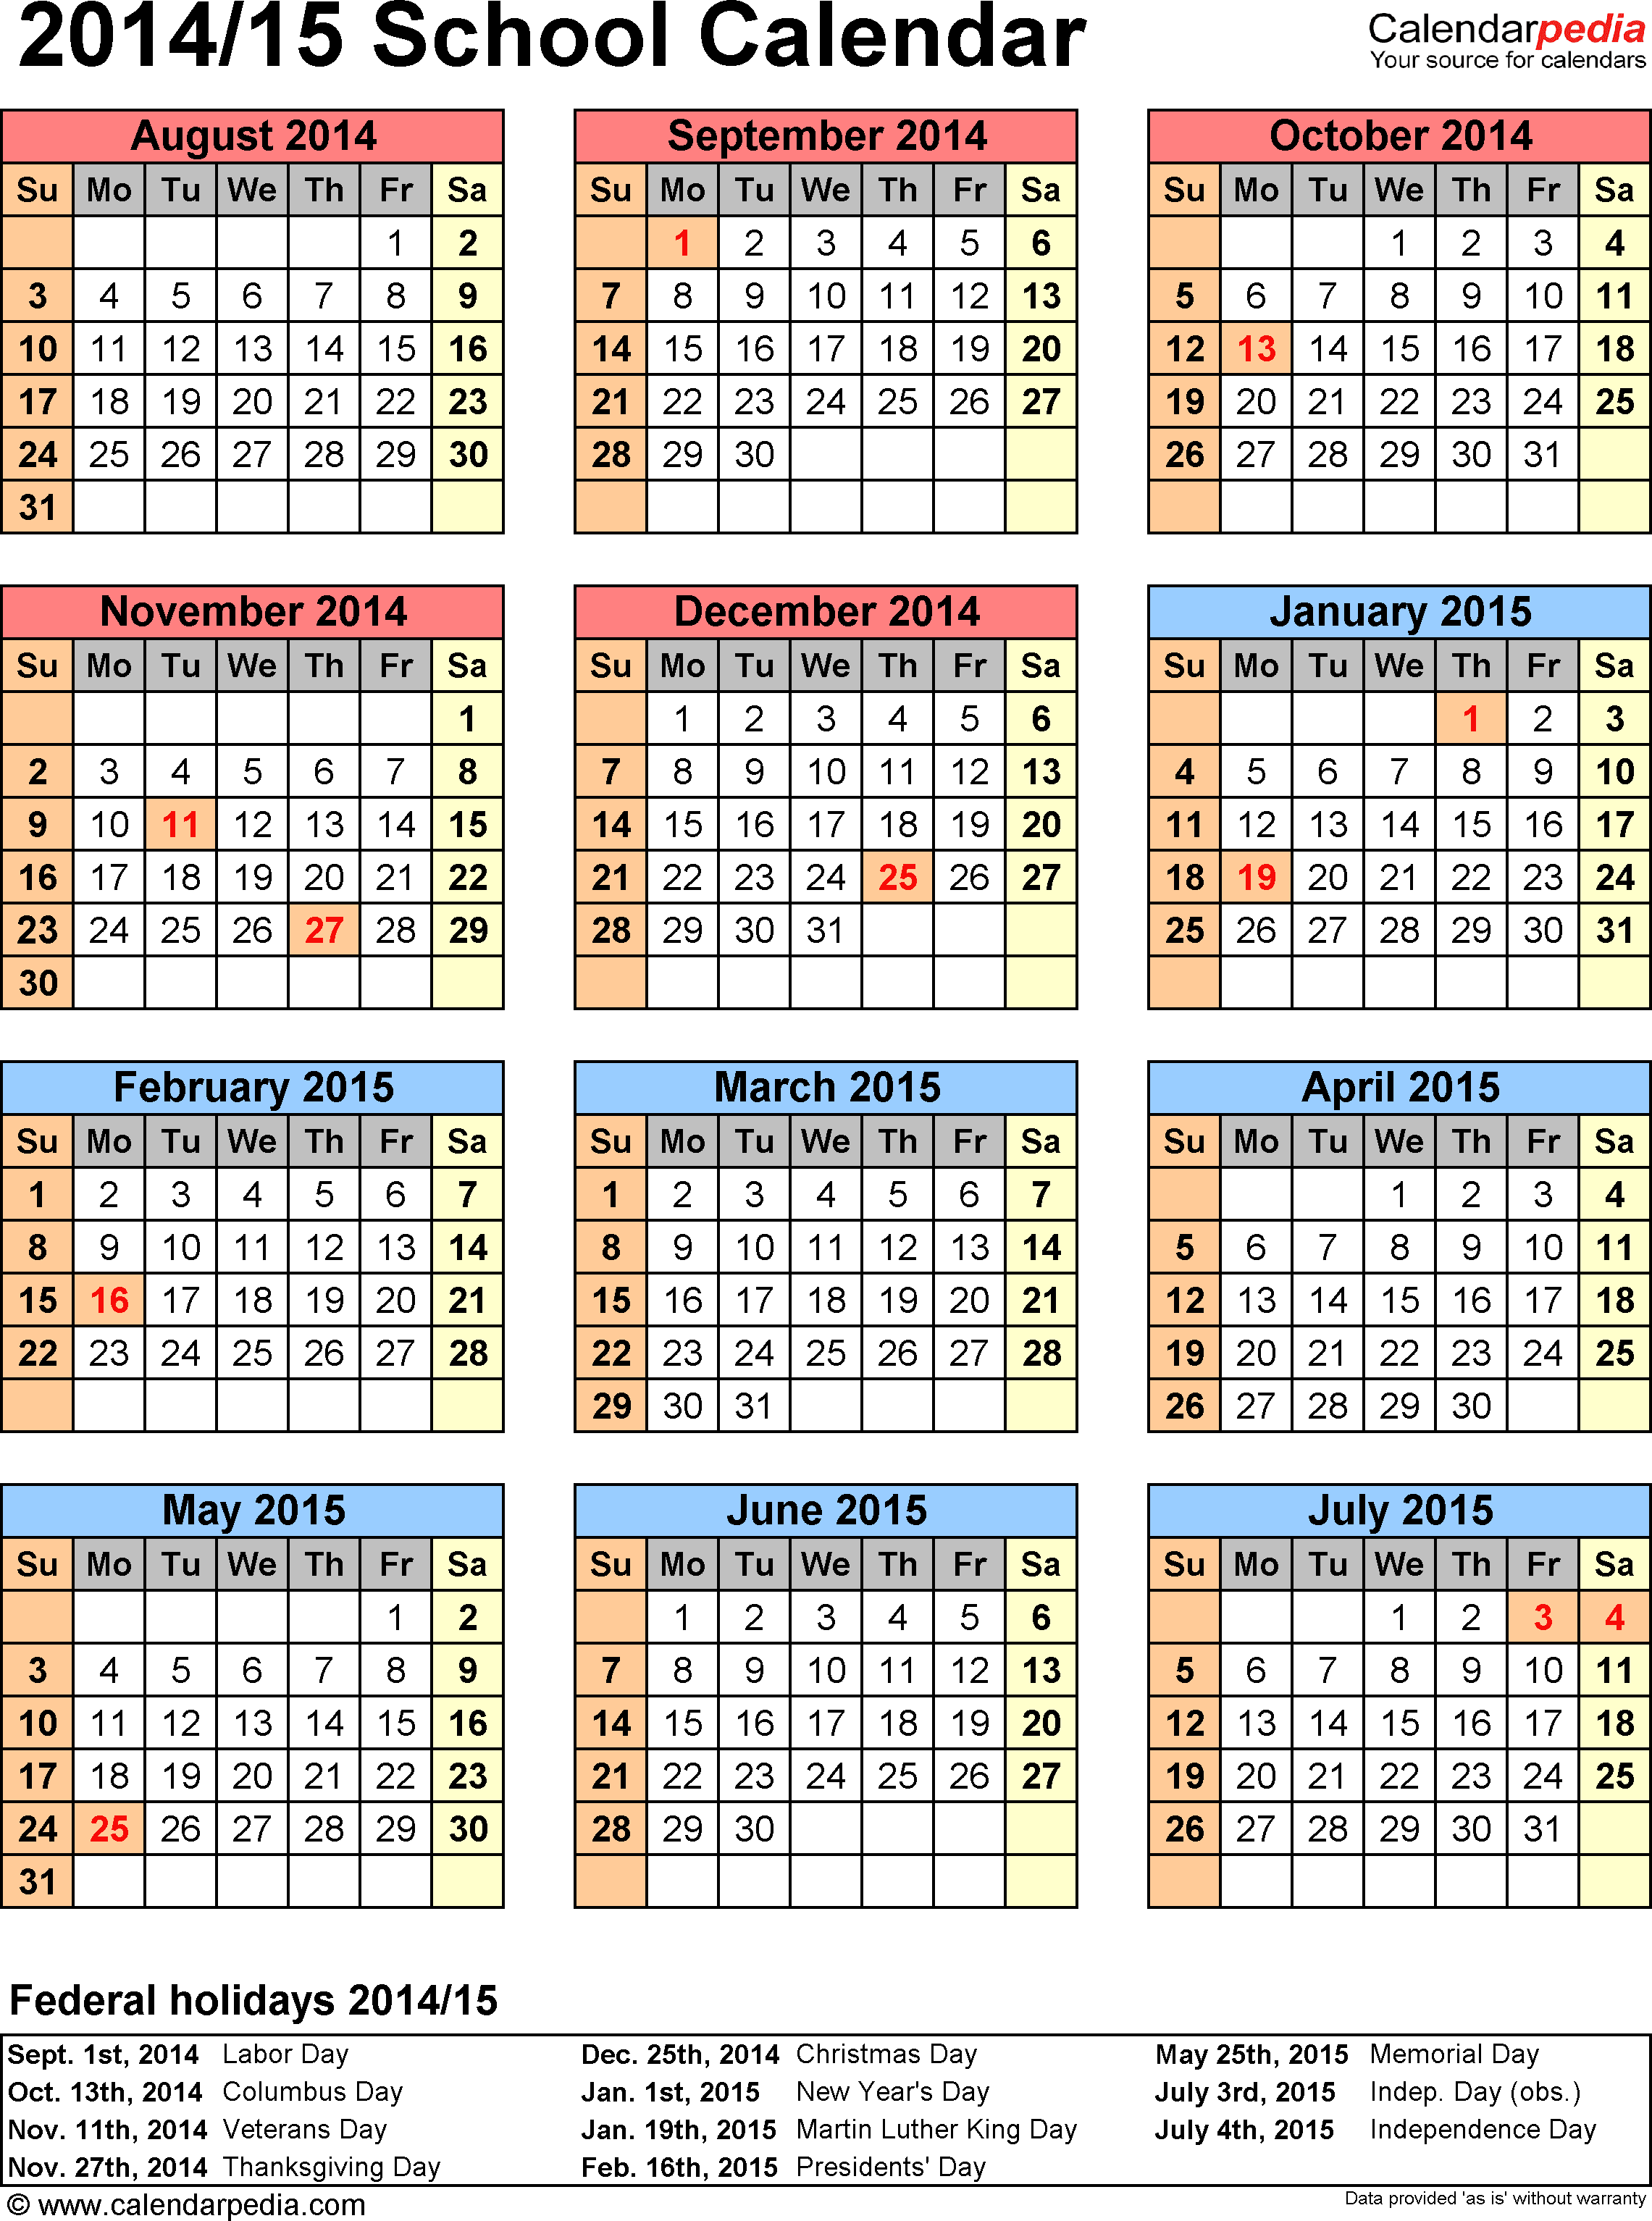 School calendars 2014/2015 as free printable Excel templates